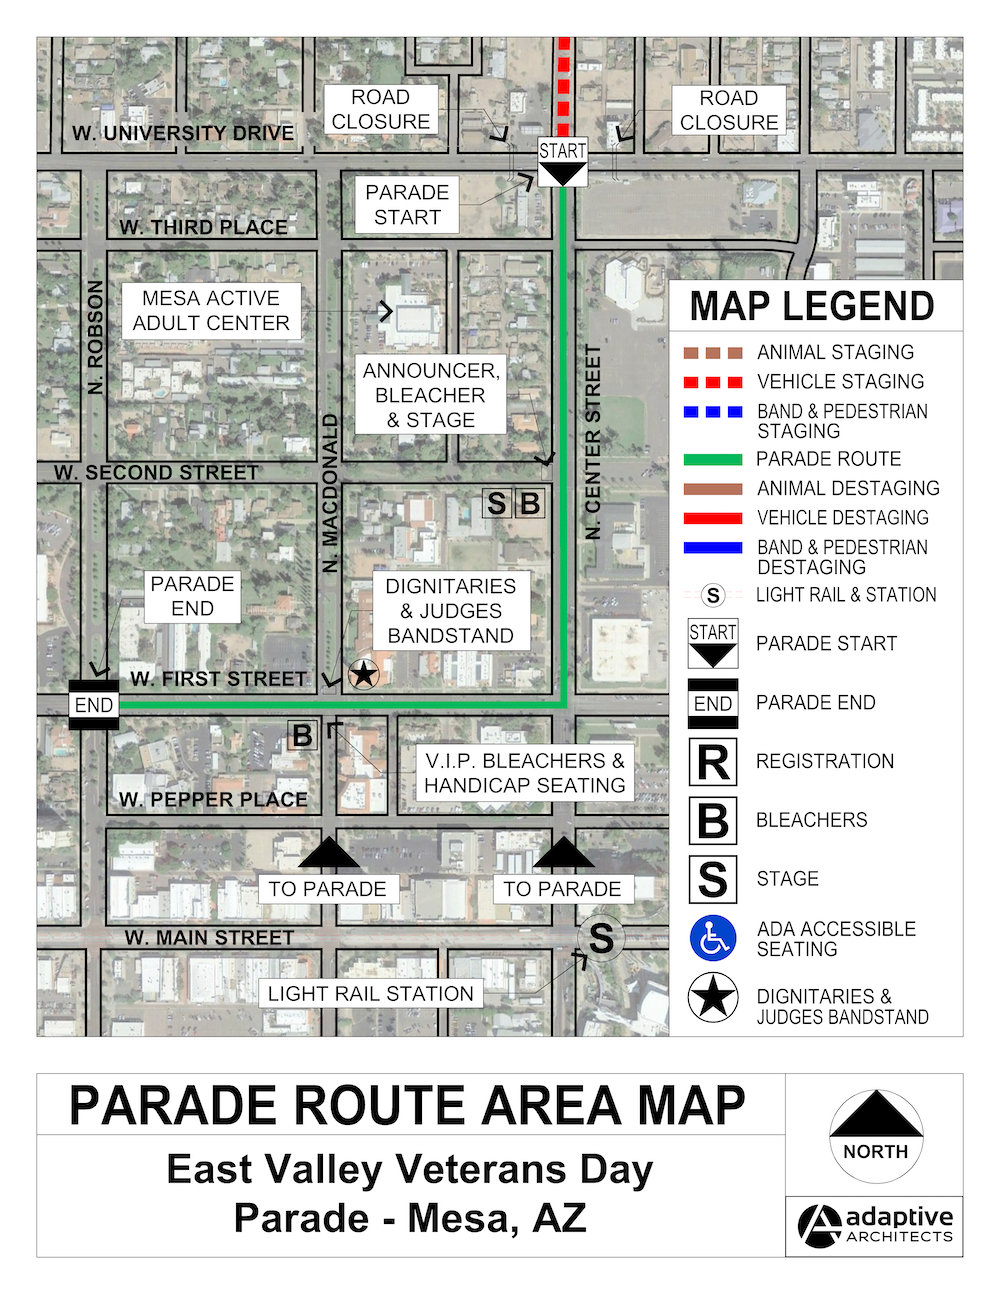 2019 East Valley Veterans Day Parade Route Map